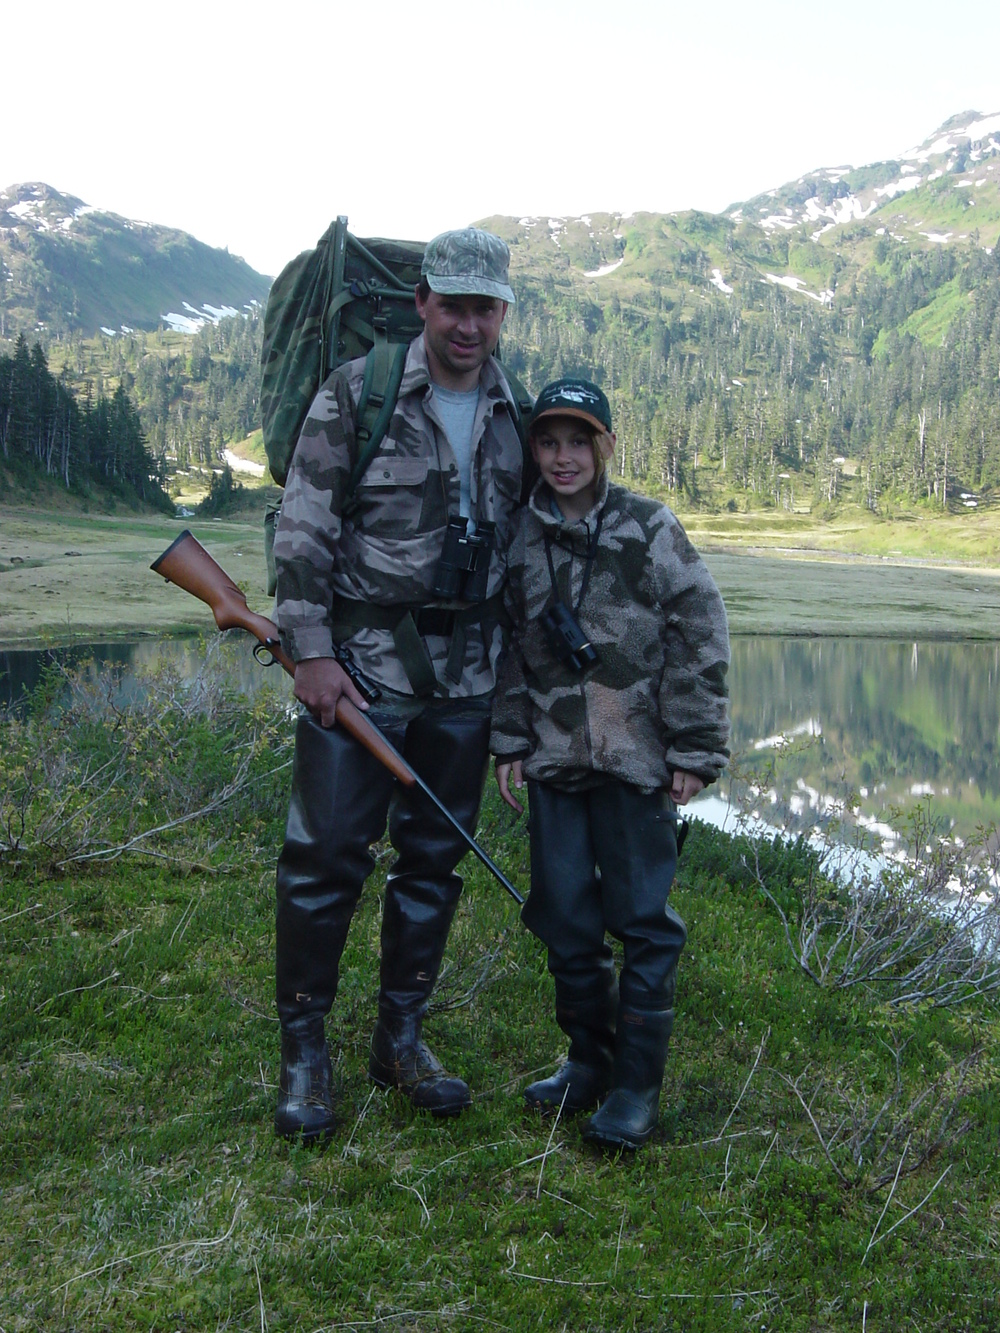 Jordan and her dad Sagen about 30 minutes before she shot her bear.  The bear was shot in the field behind Jordan.